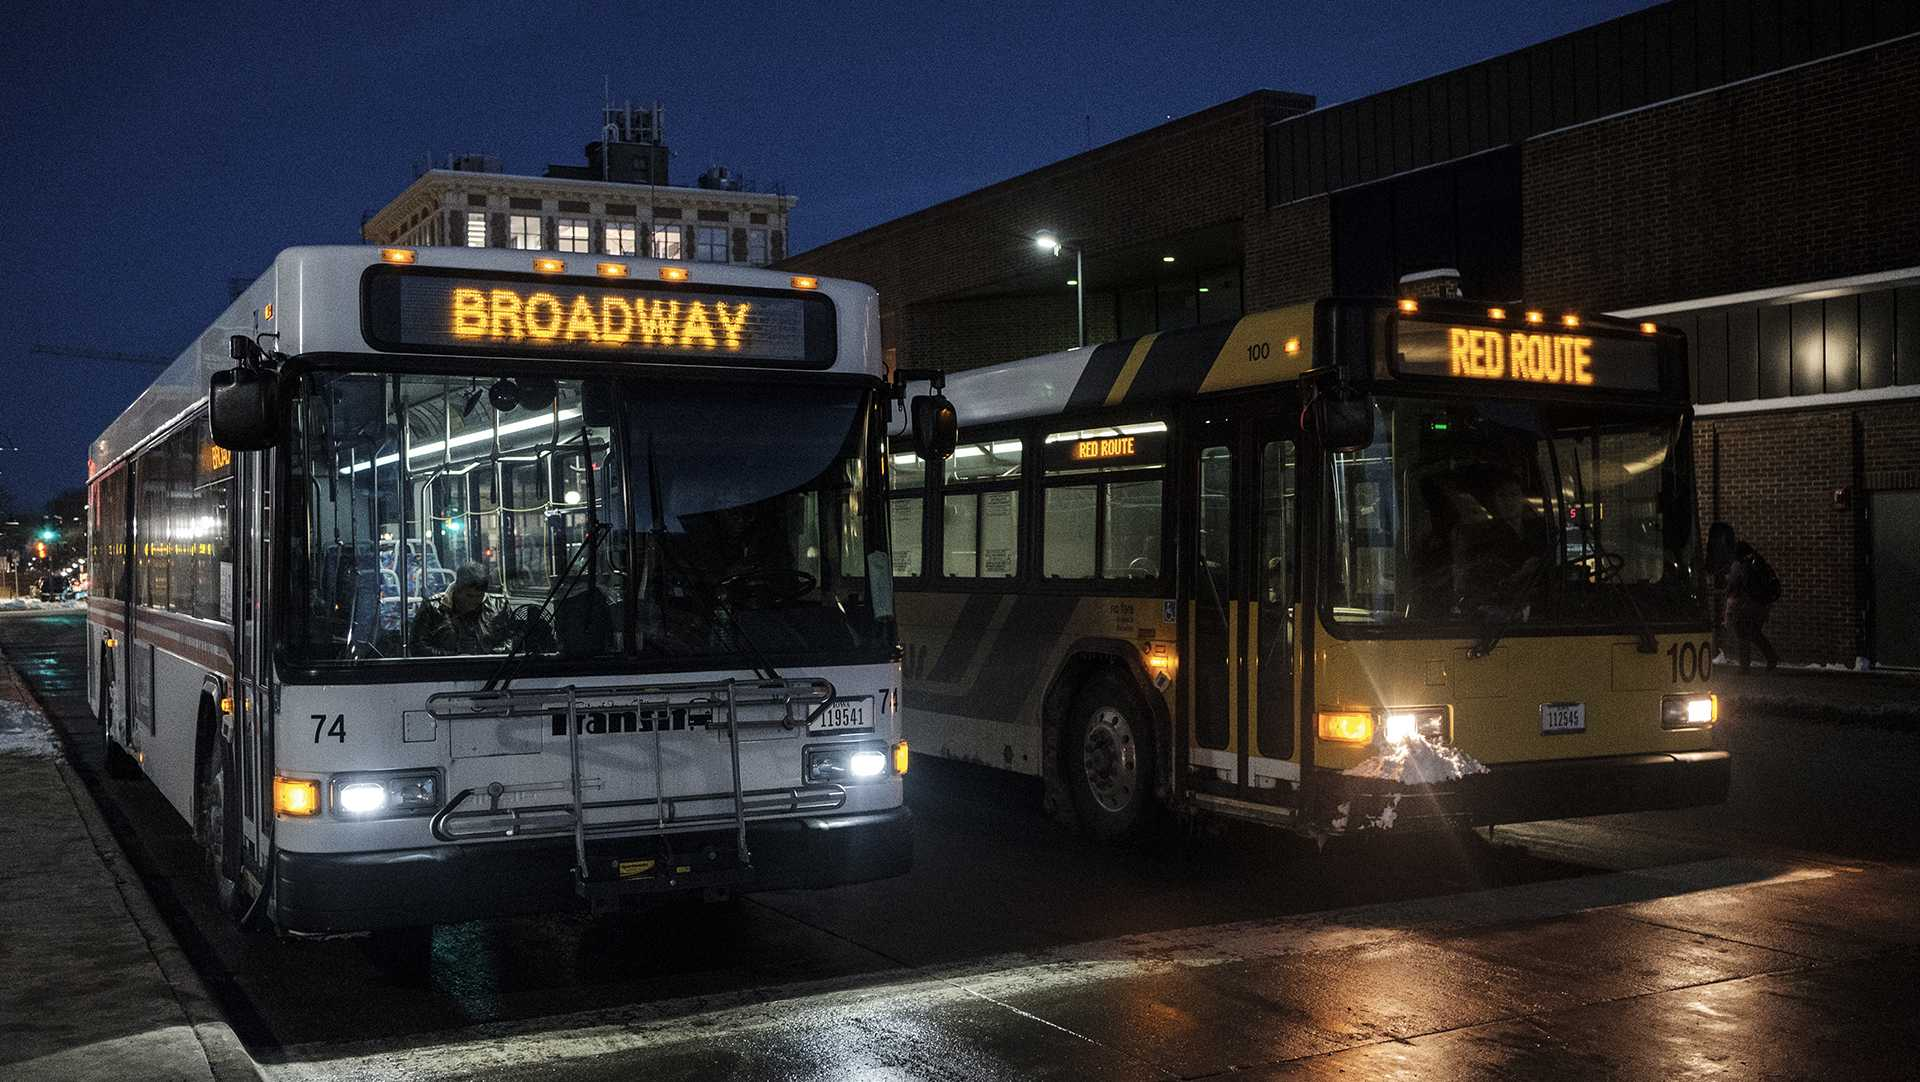 Commuters load and unload busses at the Downtown interchange in Iowa City on Wednesday, Feb. 7, 2018. The interchange serves routes from three different bus services: Coralville Transit, Iowa City Transit, and the University of Iowa's Cambus. Recently the Iowa City Chamber of commerce proposed greater integration of the Iowa City and Coralville bus systems. (Nick Rohlman/The Daily Iowan)